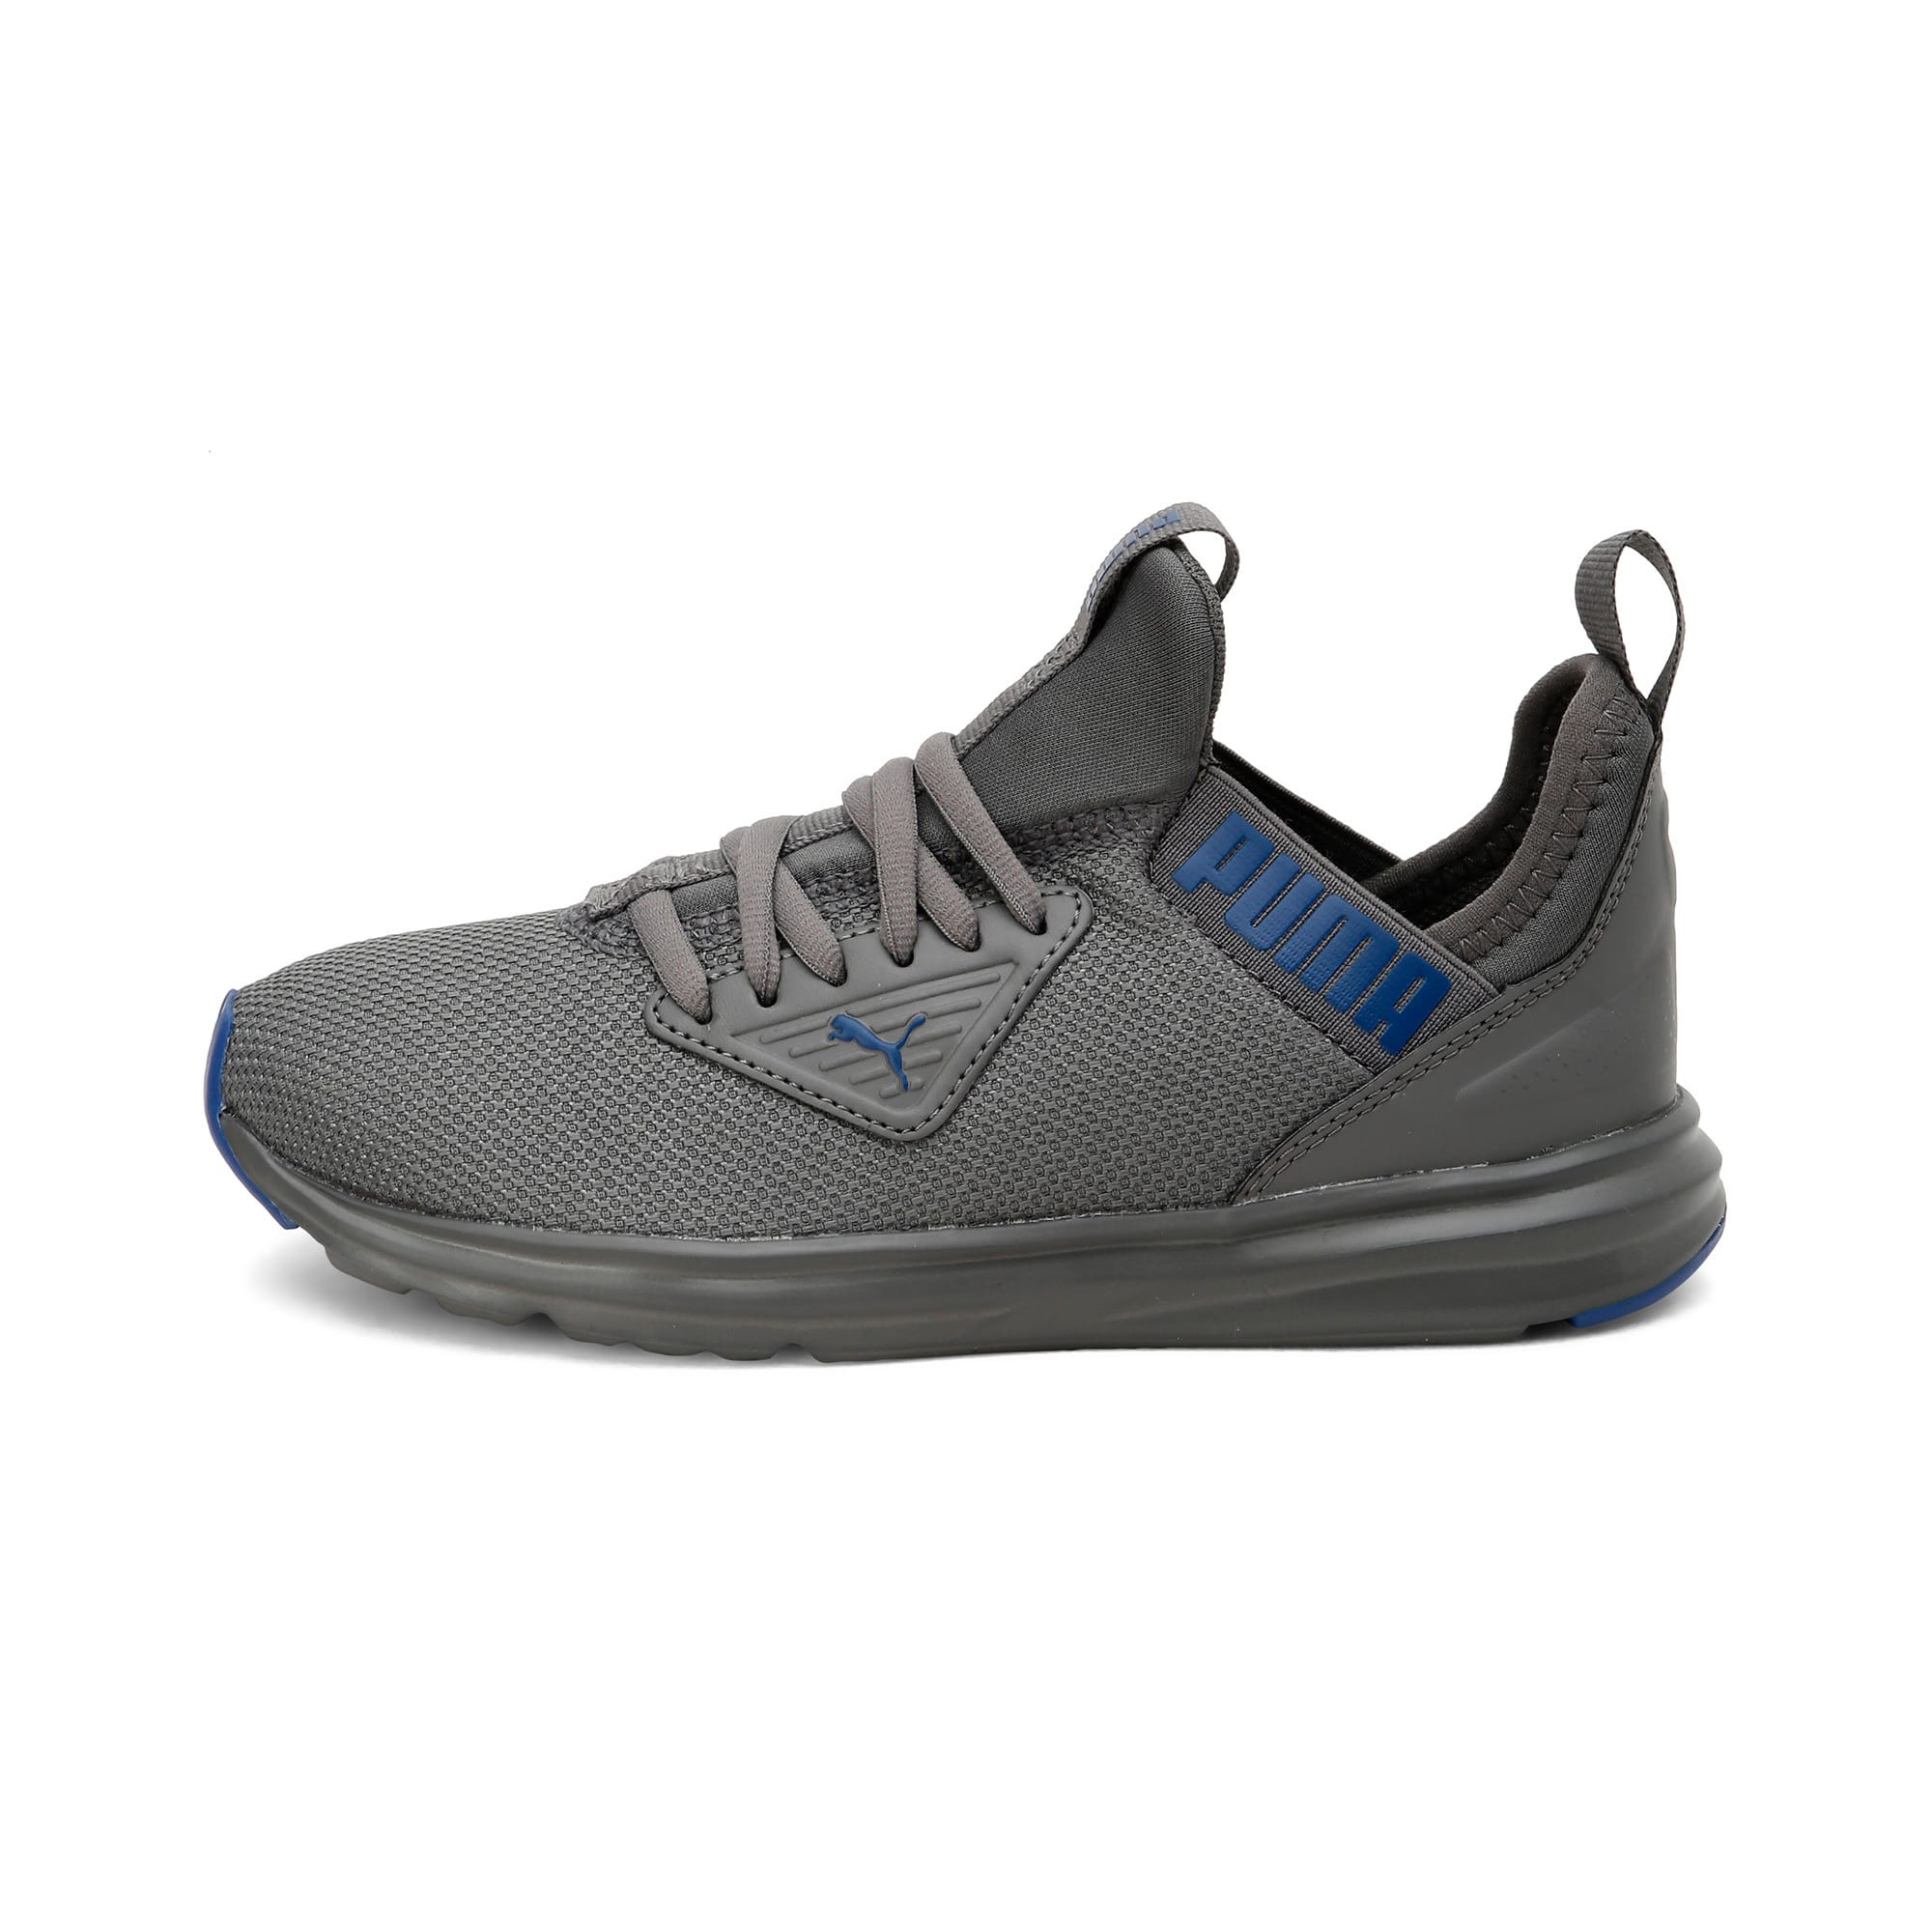 Thumbnail 1 of Enzo Beta Kids' Trainers, CASTLEROCK-Galaxy Blue, medium-IND